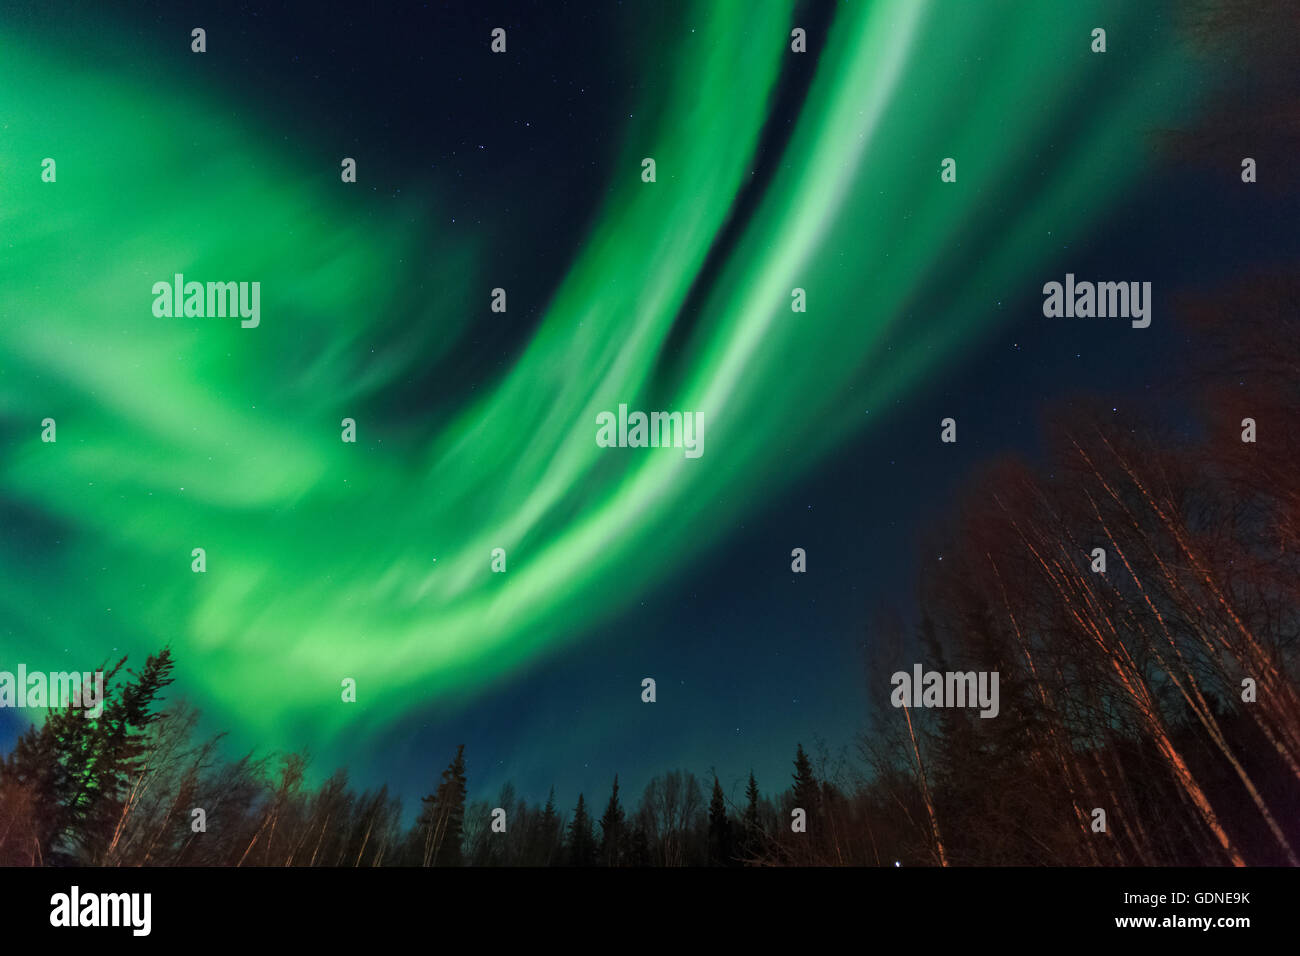 Aurora Borealis, Northern Lights Near Chena Resort, Near Fairbanks, Alaska